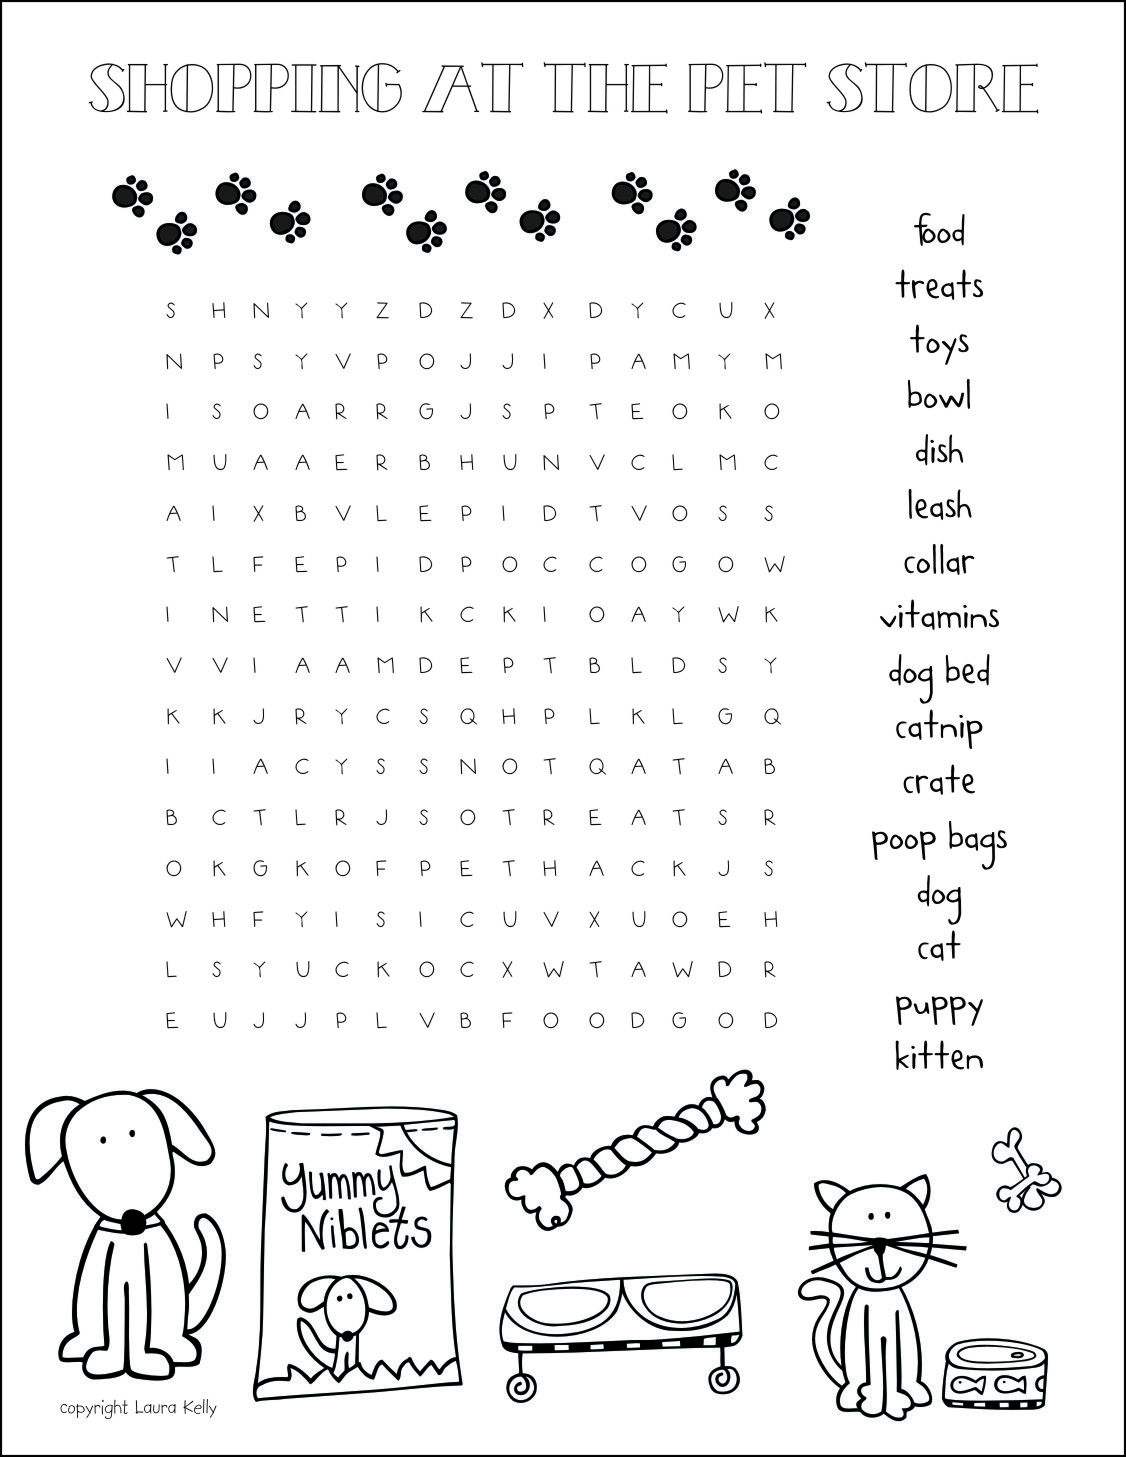 Pet Store Word Search